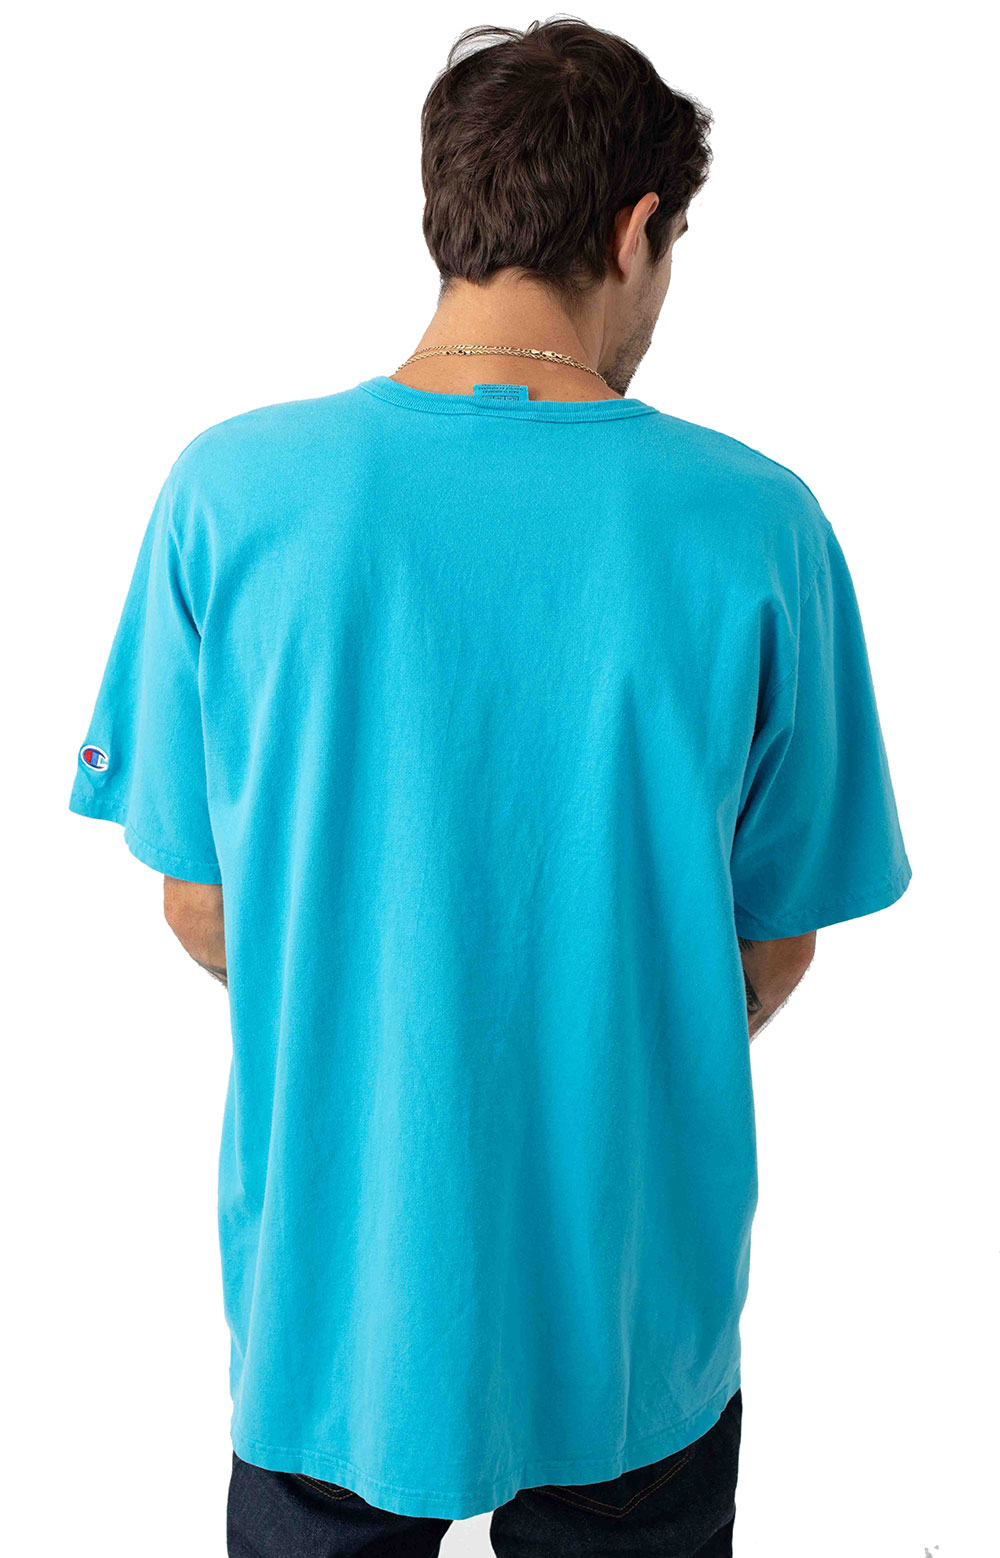 Heritage Garment Dyed Vertical Script T-Shirt - Tidal Wave 3